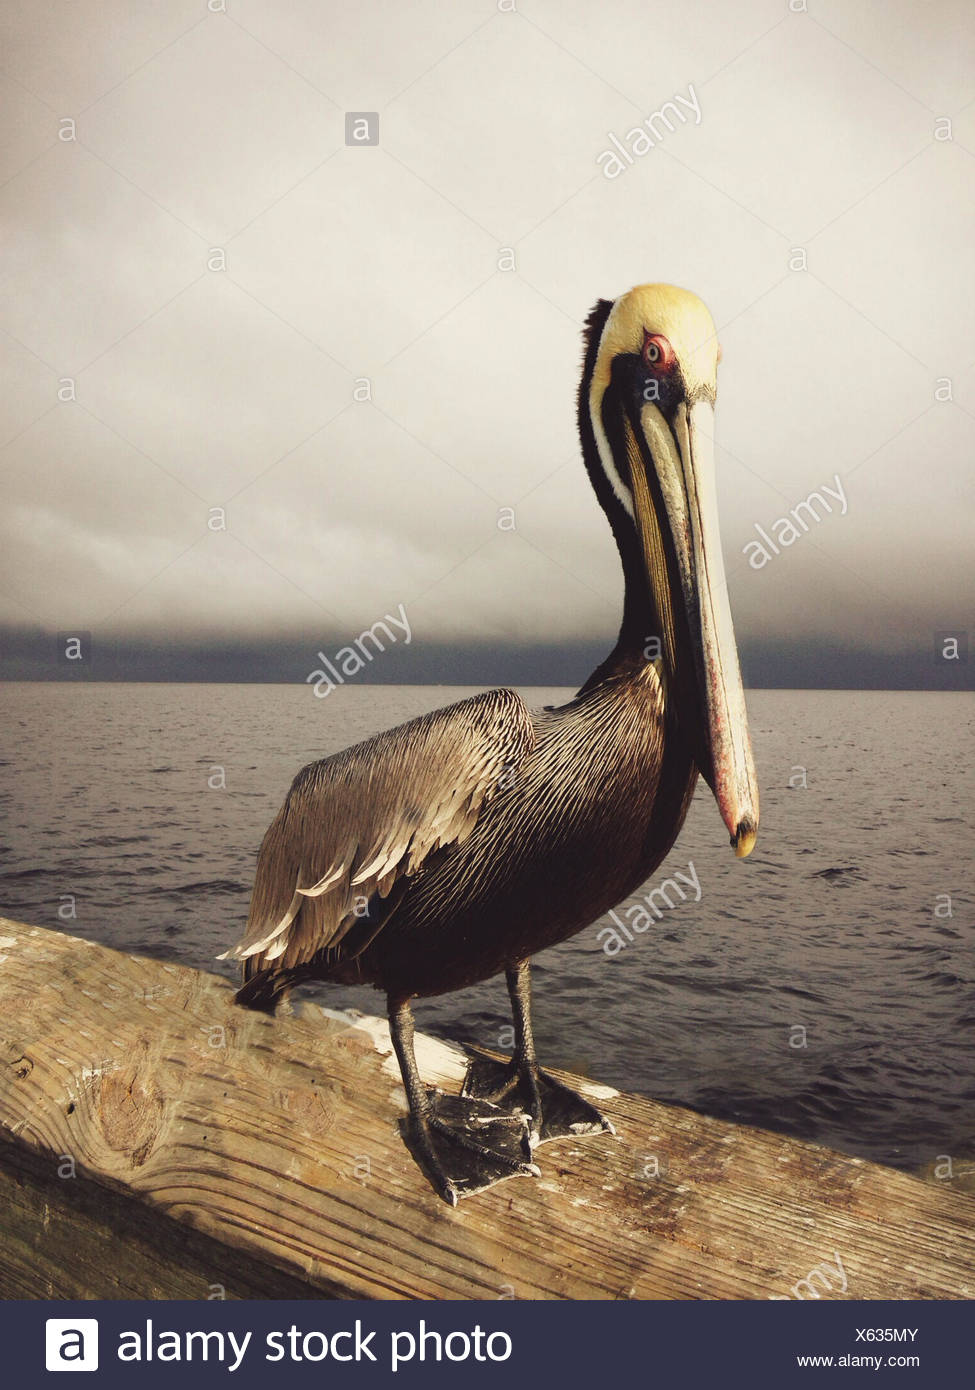 Pelican standing on pier Stock Photo